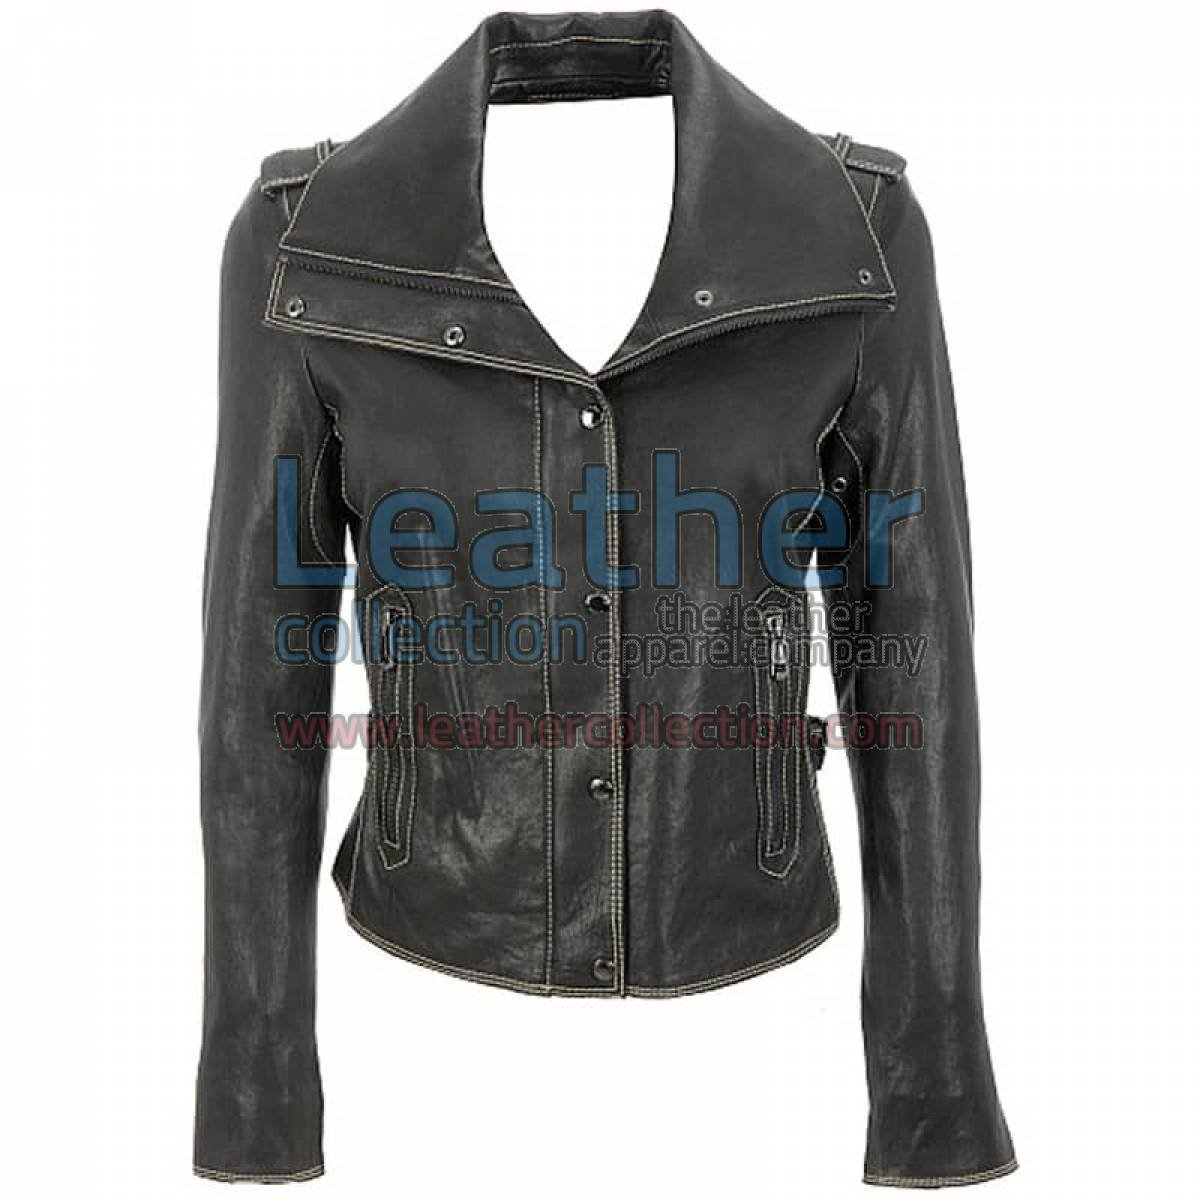 Wing Collar Jacket Of Leather